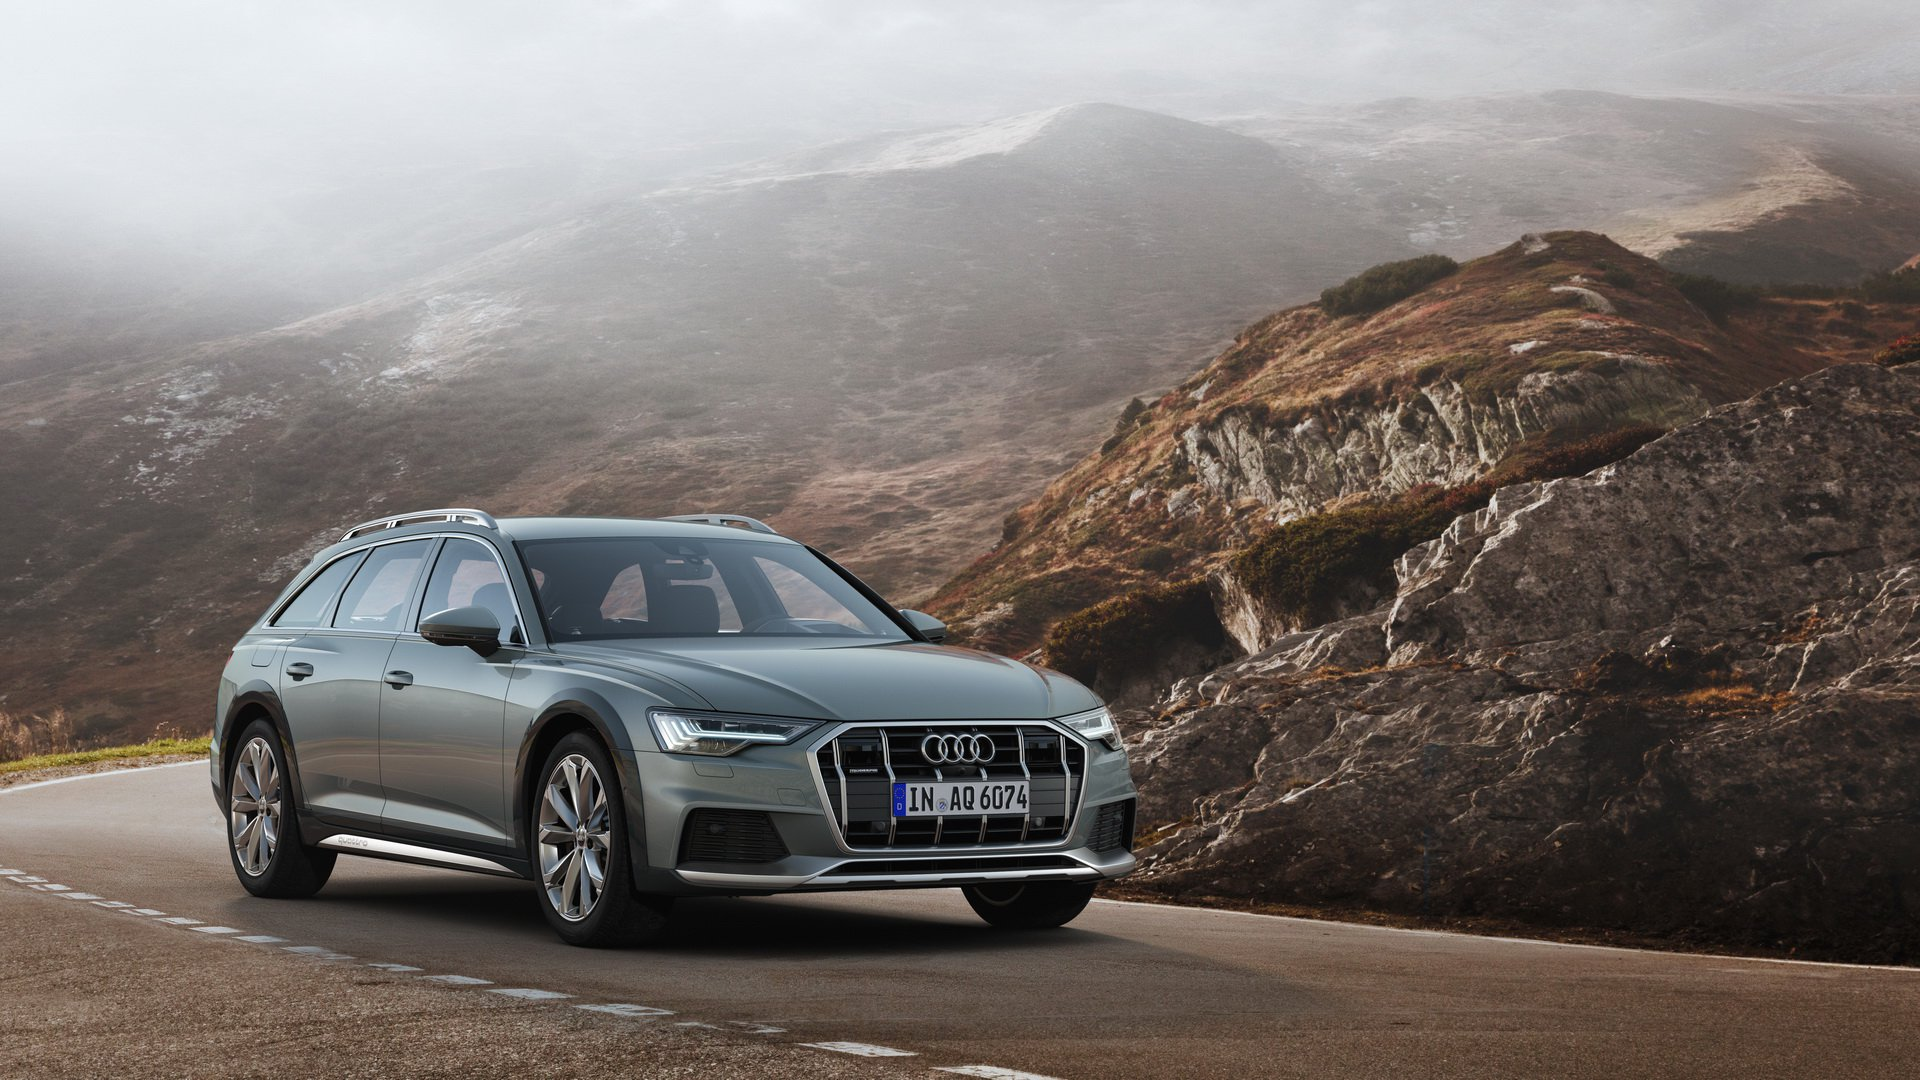 2020 Audi A6 3.0 TDI Does Well in Acceleration and Fuel Consumption Tests - autoevolution